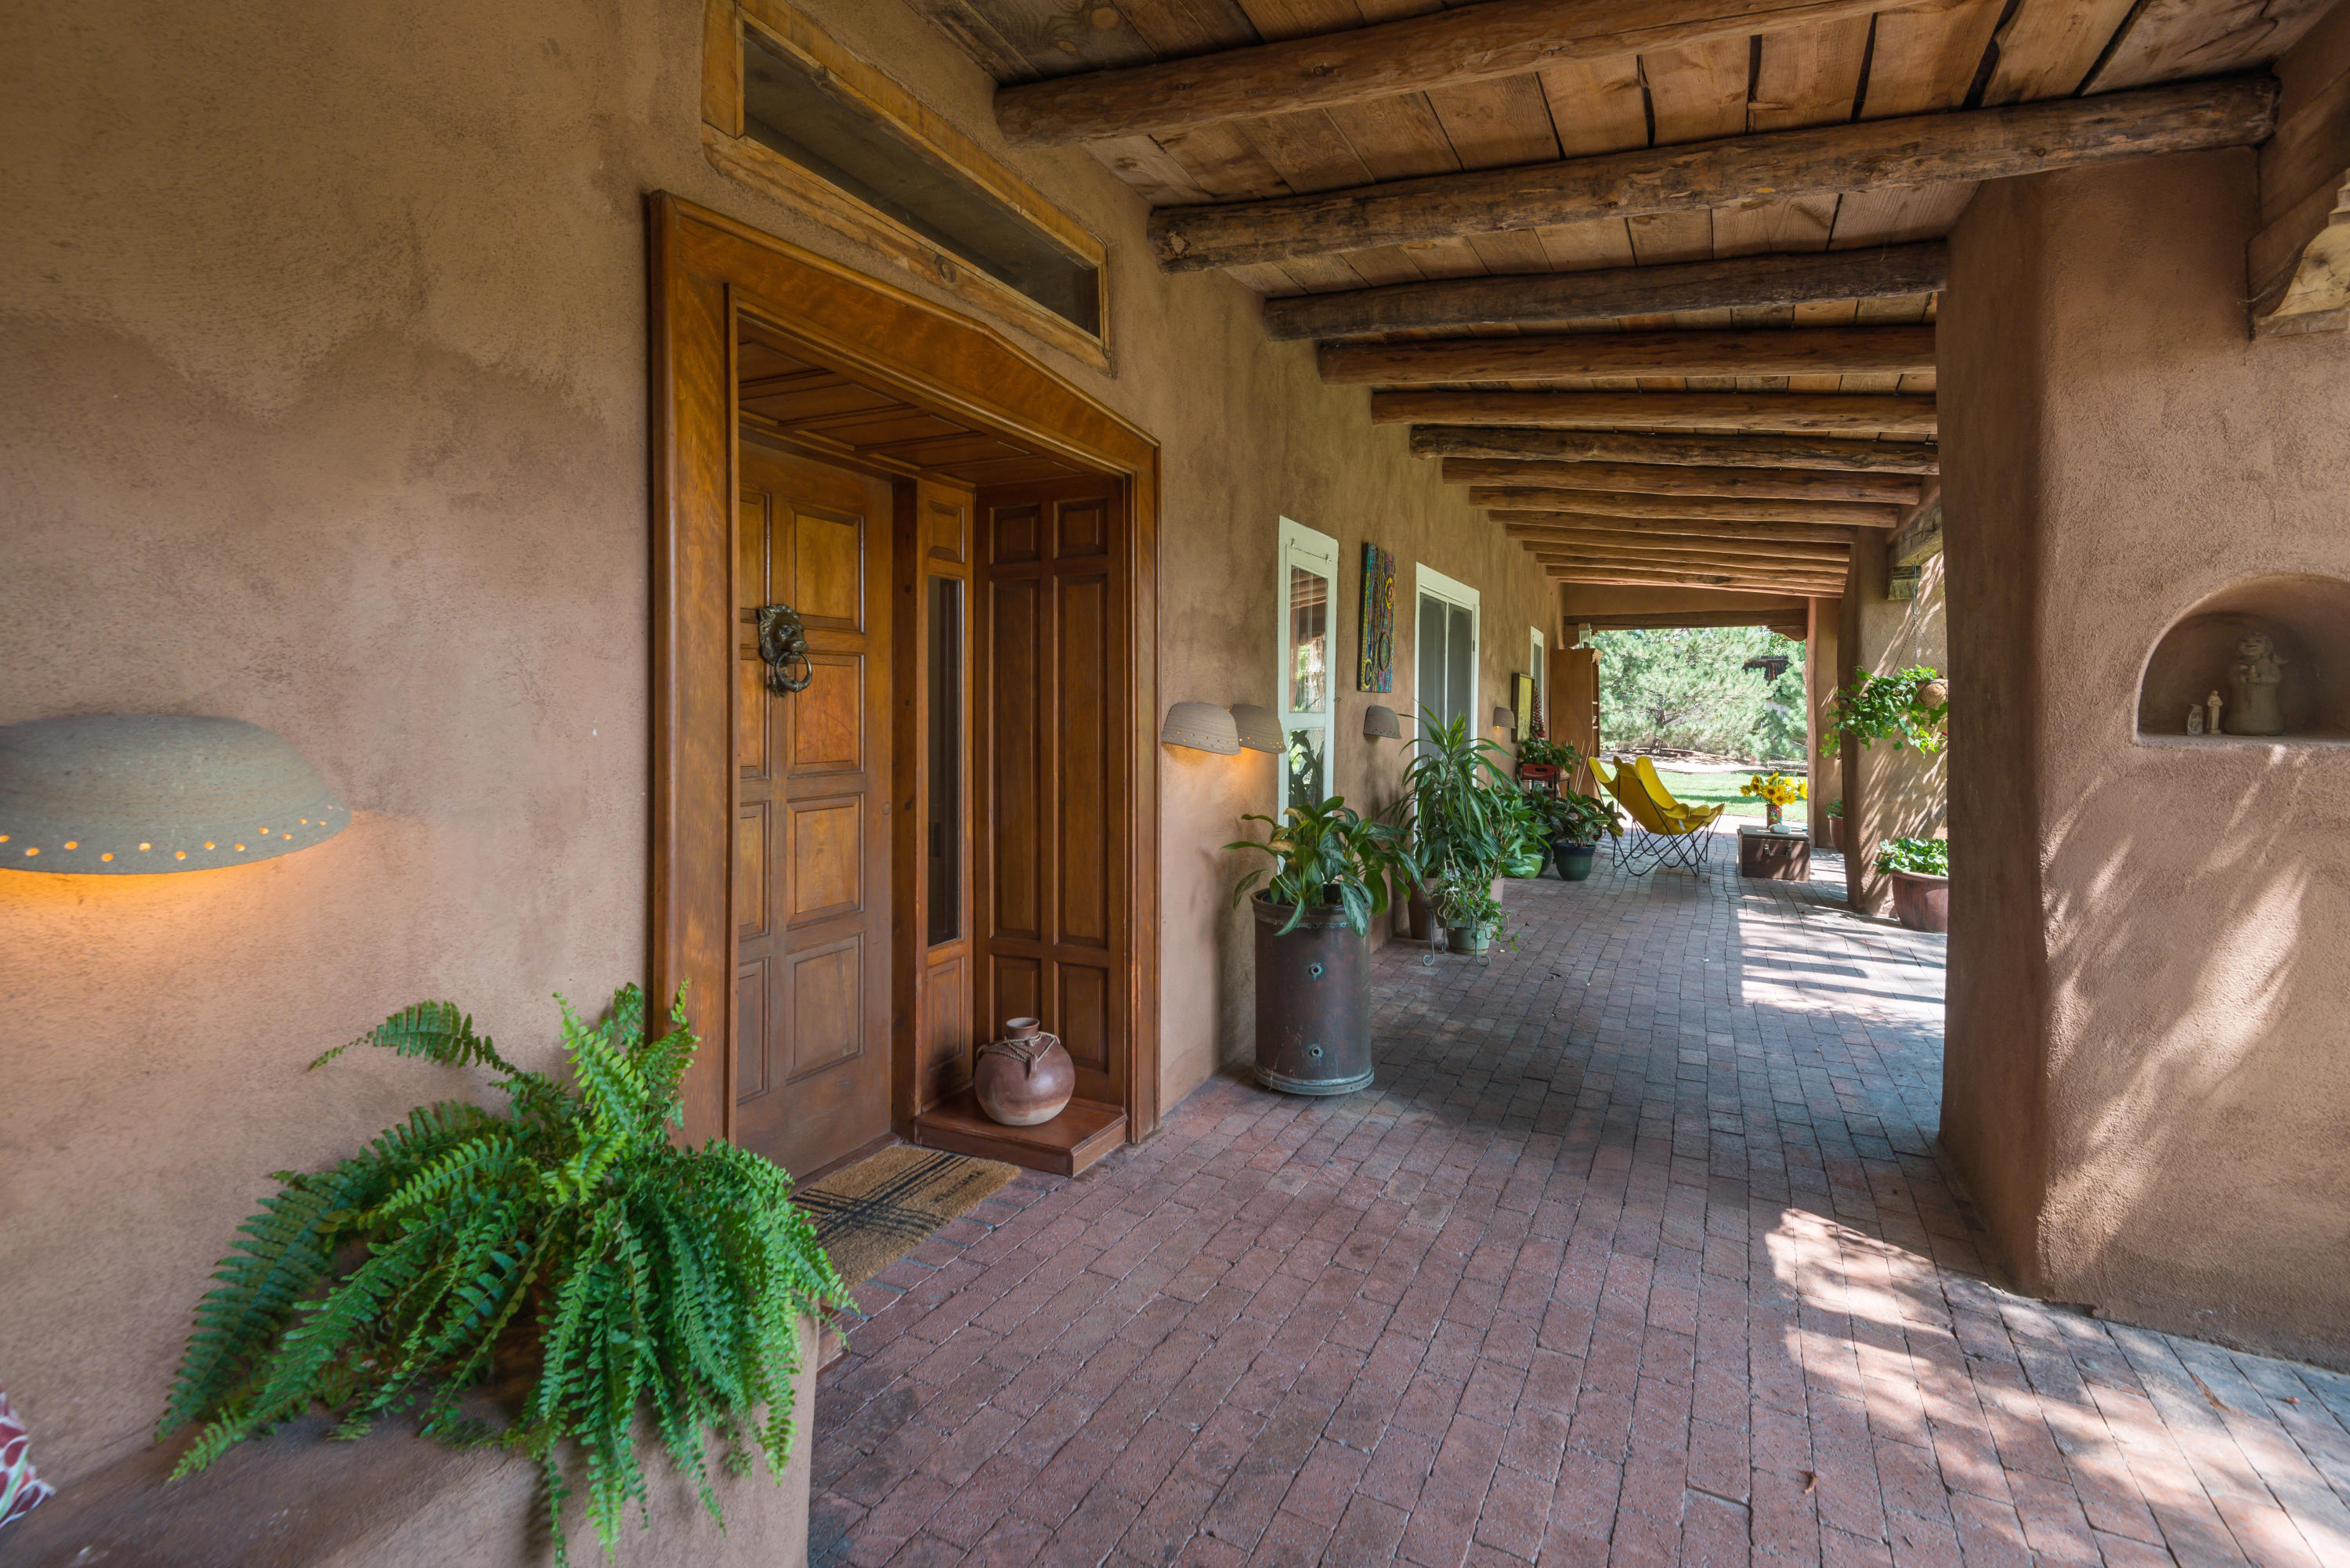 Character-filled historic adobe hacienda in the heart of Corrales set in a lush private setting bursting w/ rose gardens, cottonwoods & access to acequia trails. Step into another era w/ hand-crafted architectural detail, including stained glass windows, Talavera tile, hand-adzed beams & gorgeous brick & saltillo floors. 2 master suites in main house plus a charming separate studio w/ a 3/4 bath for guests or home office/business. Enter a world of serenity & quiet w/ 30'' thick adobe walls or relax outside on spacious patios. Horses welcome w/ on-site horse barn. Conveniently located in the Corrales Commercial zone, this extraordinary adobe could house an art gallery, restaurant or other retail establishment. The possibilities are endless! Corrales living at its very finest & most authentic.